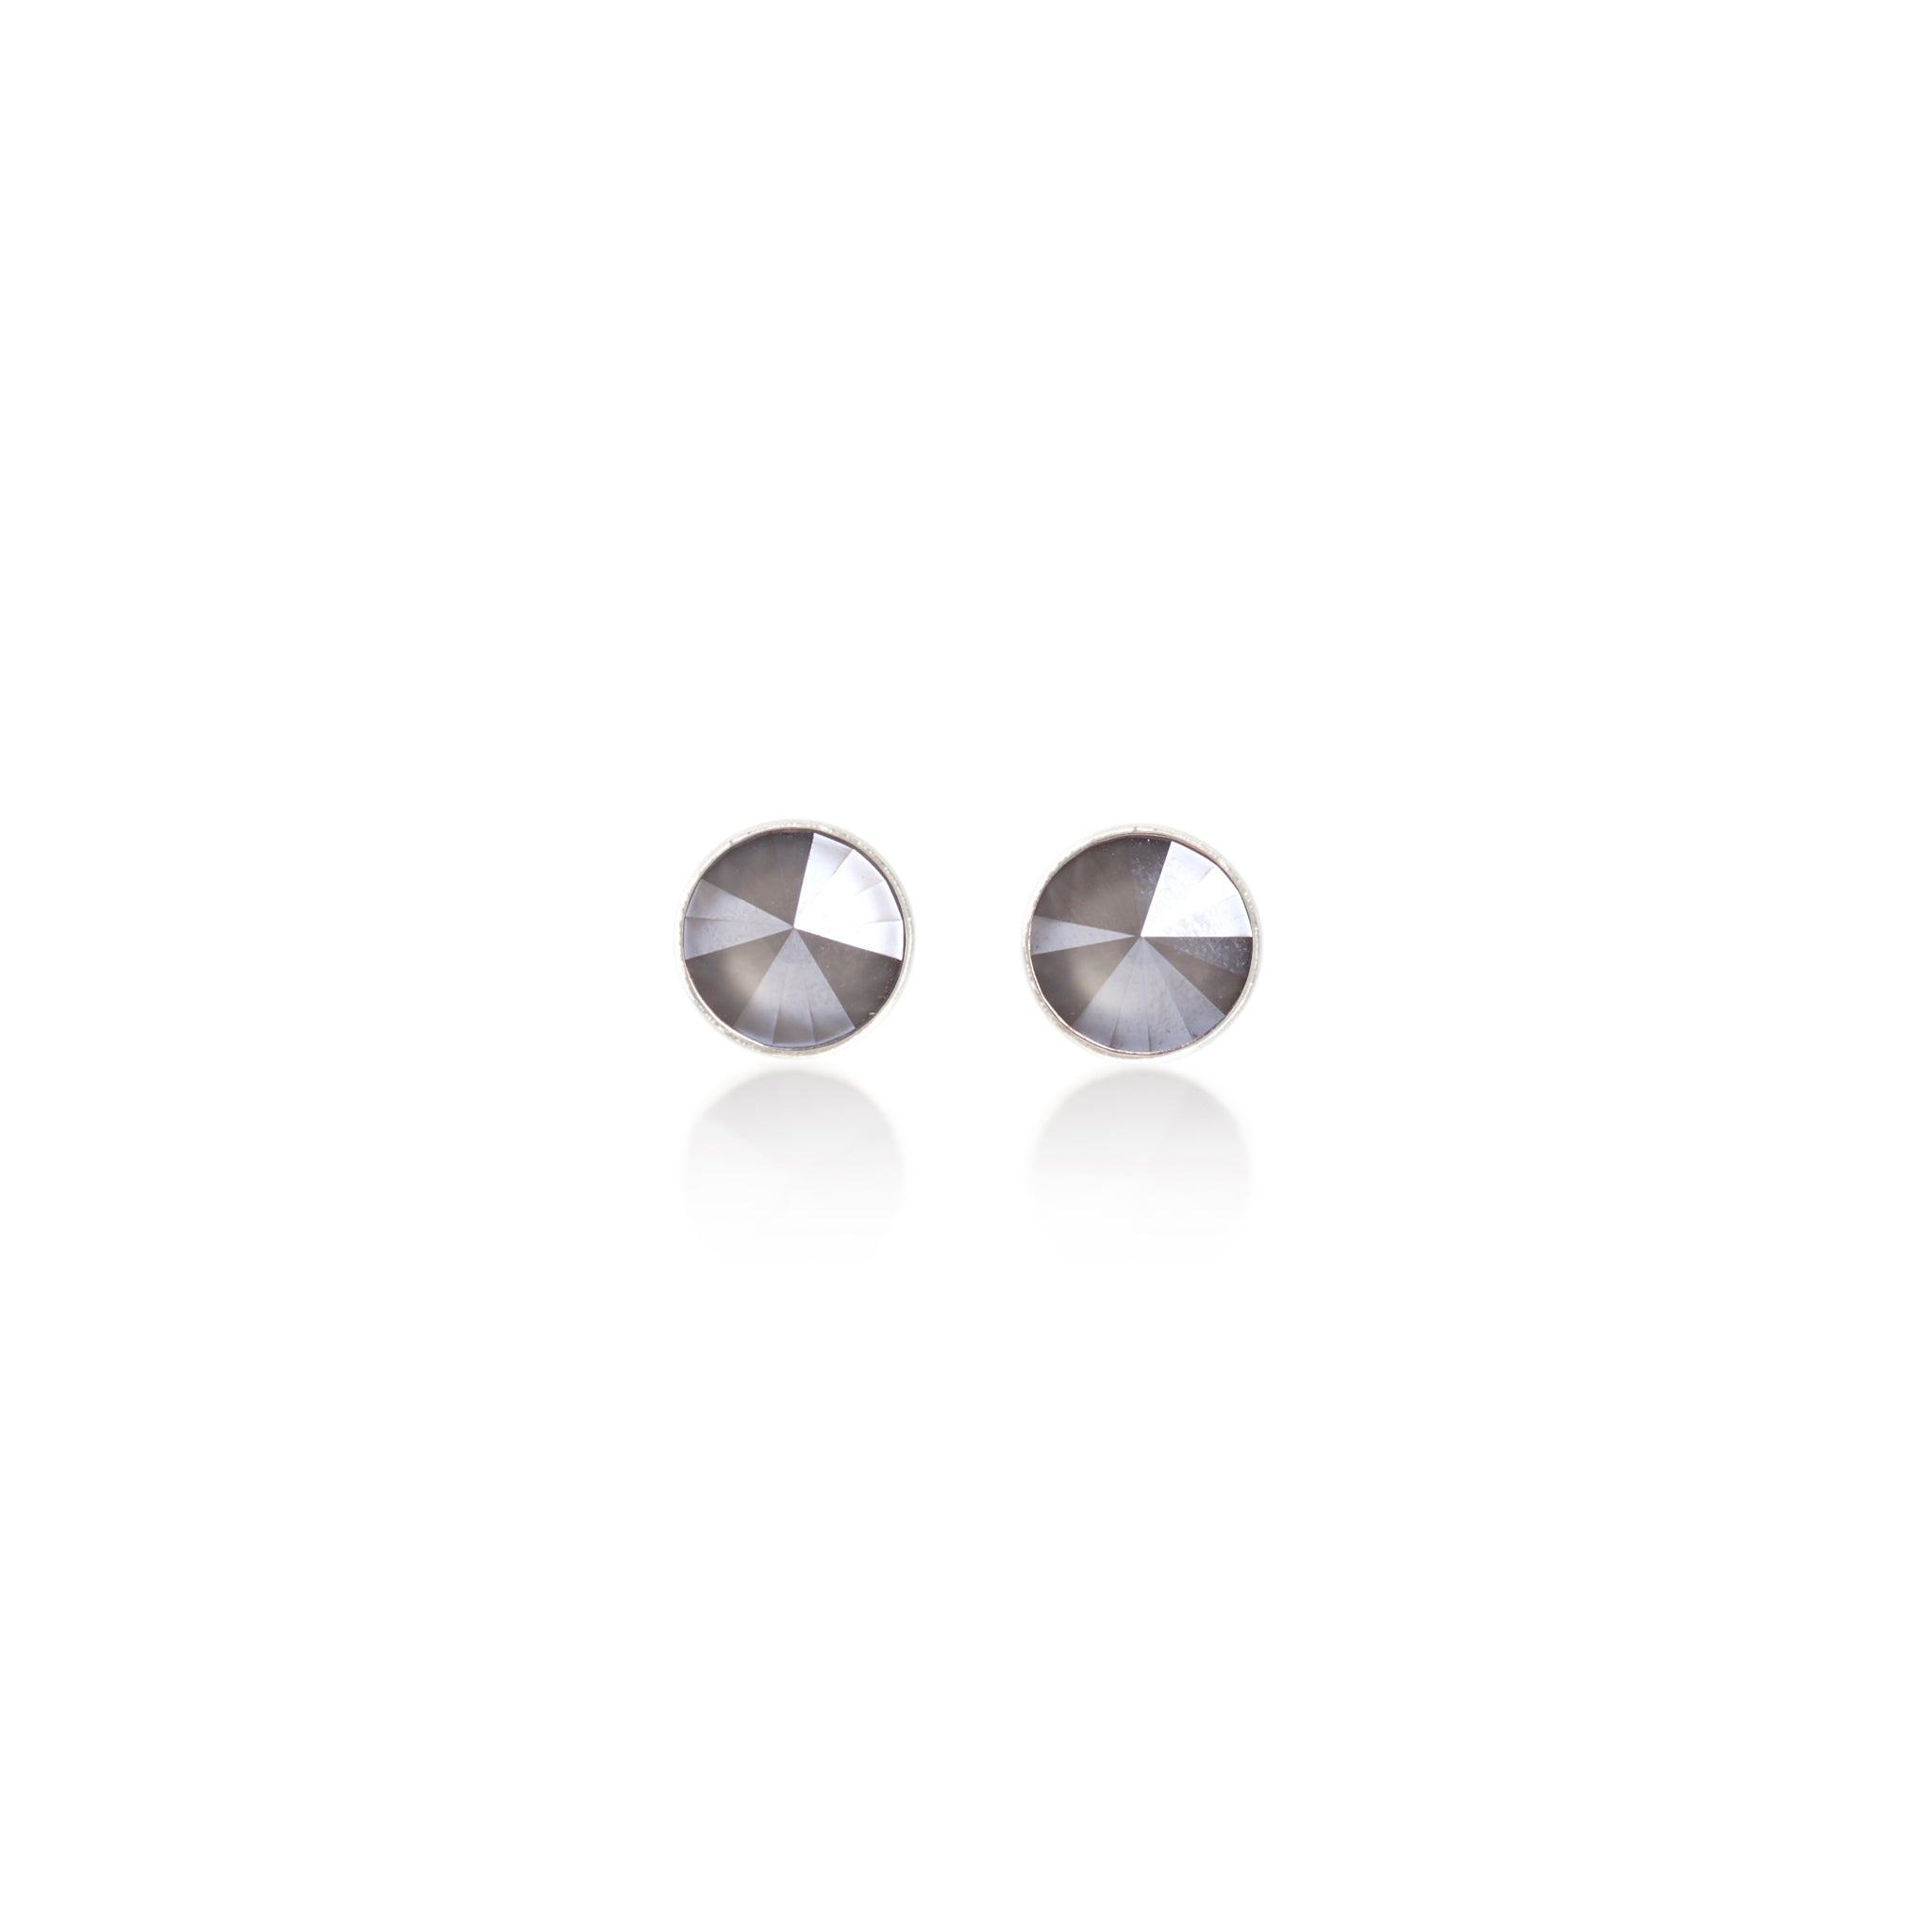 Clark Stud Earrings